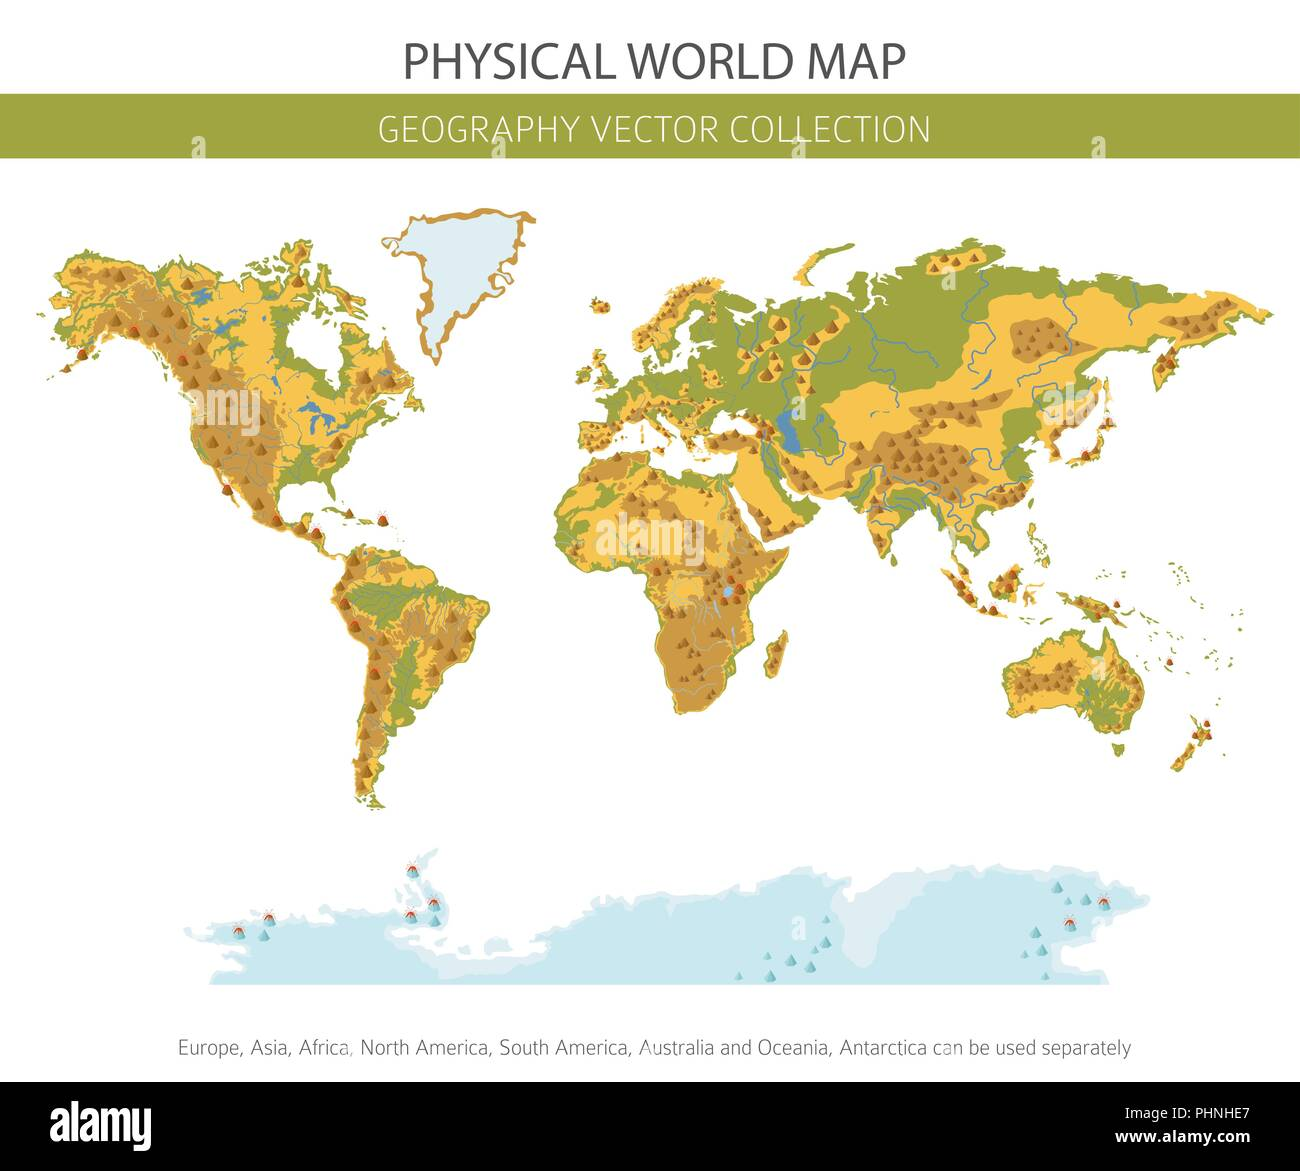 Physical world map elements. Build your own geography info graphic collection. Vector illustration - Stock Image